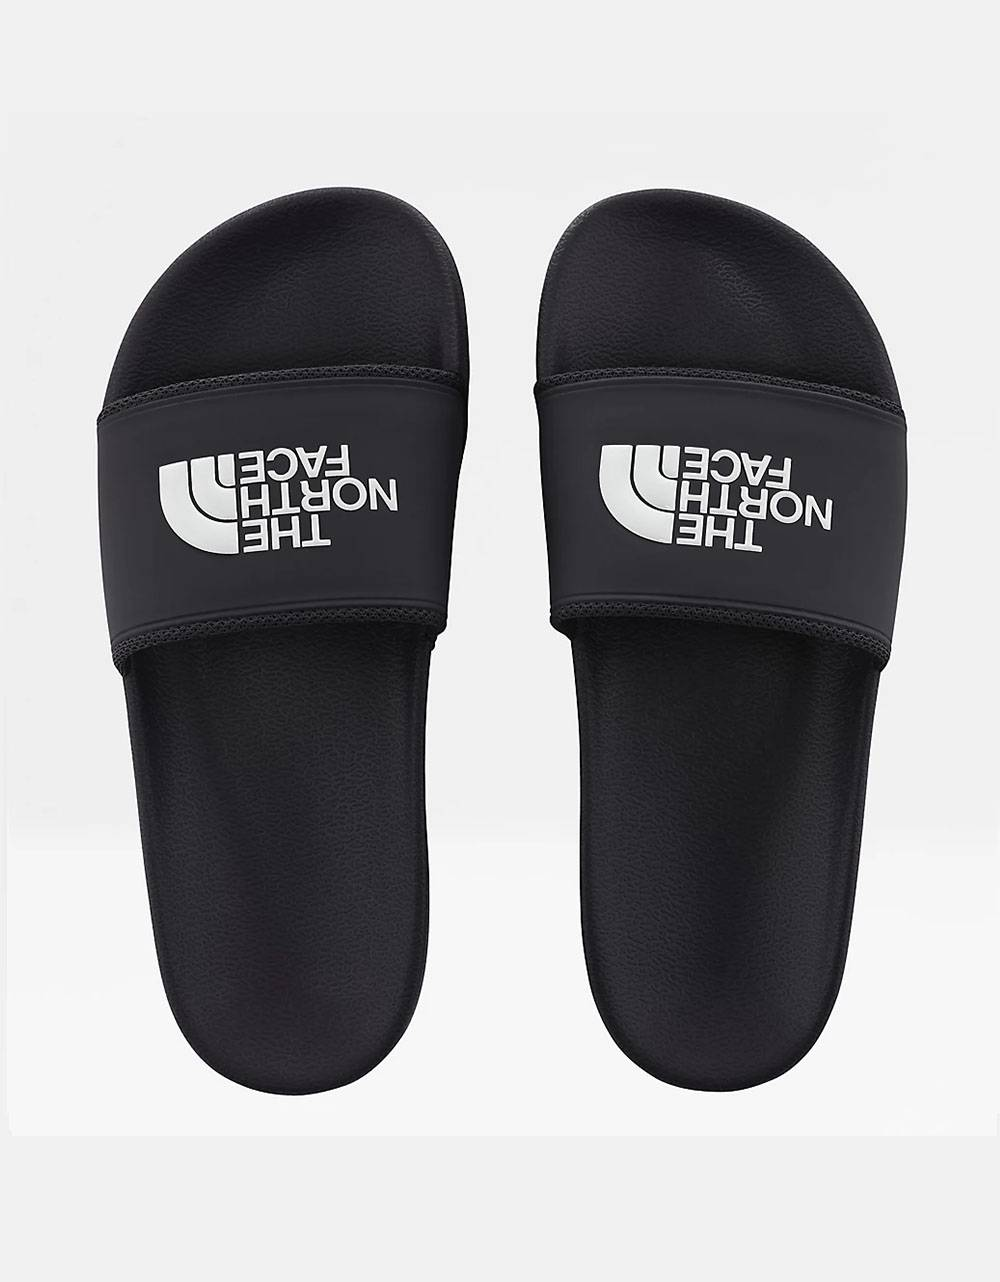 The North Face base camp slide II slippers - Black THE NORTH FACE Sneakers 39,00€